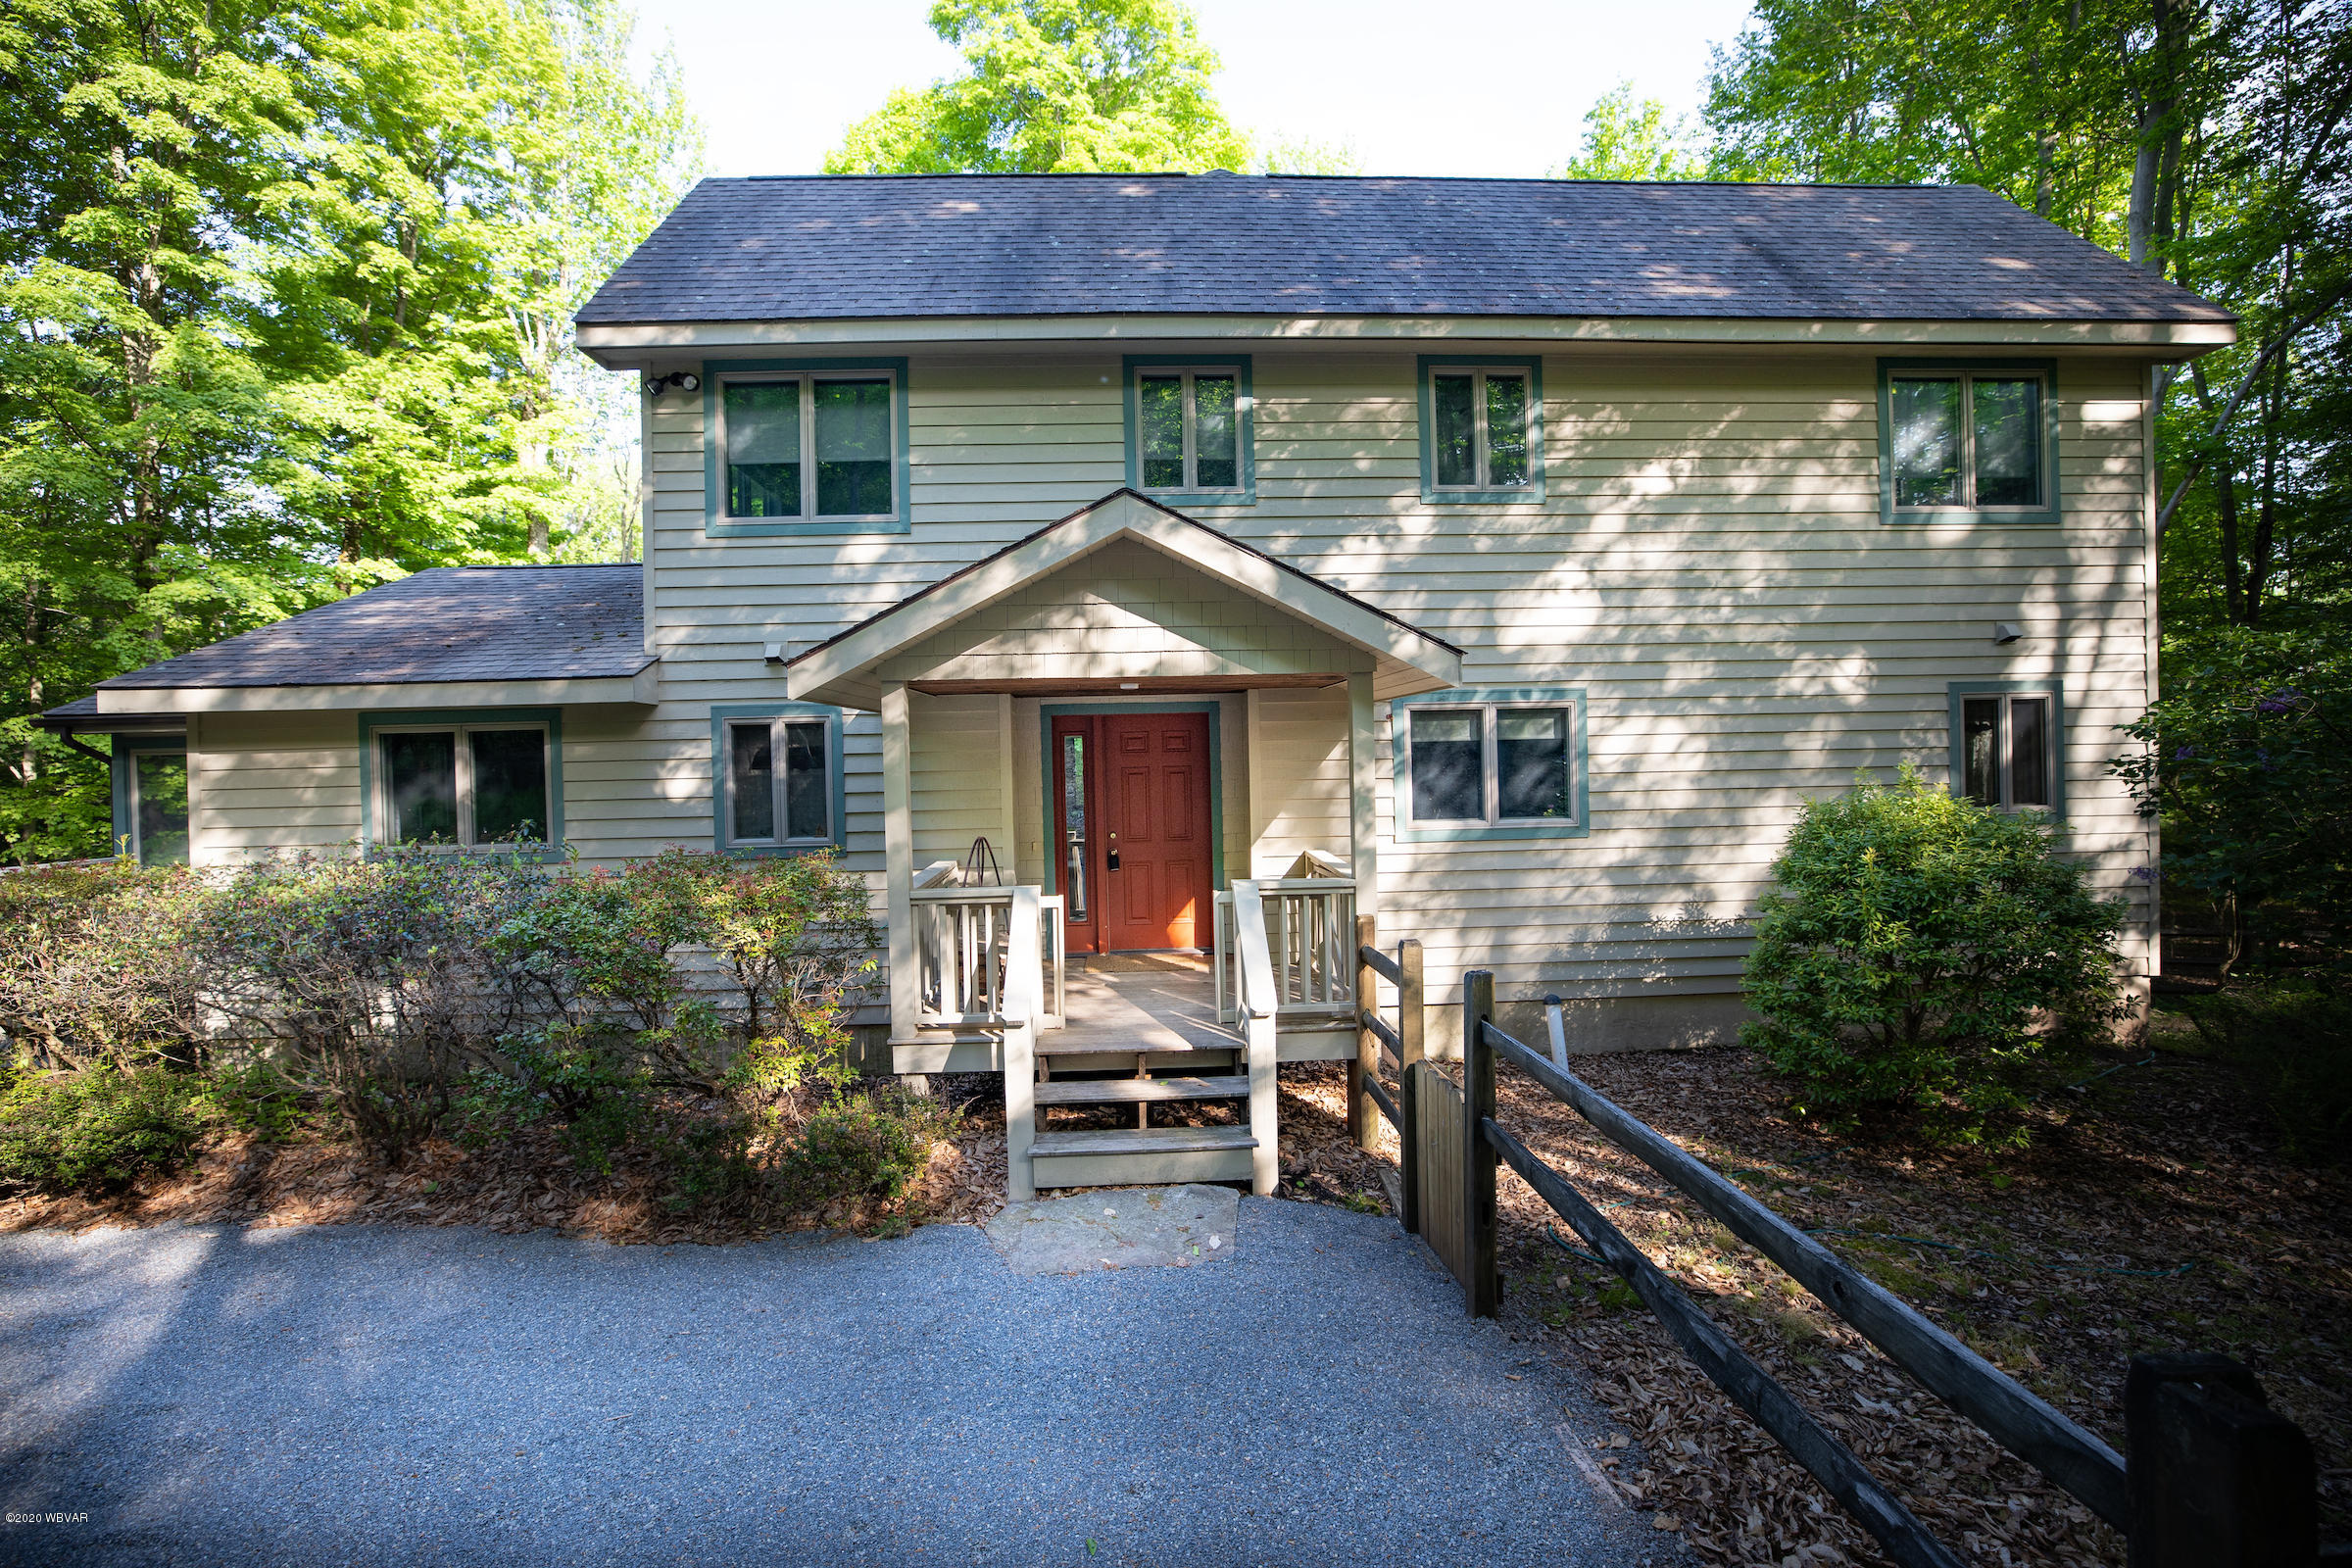 350 MOUNTAIN VIEW LANE, Eagles Mere, PA 17731, 3 Bedrooms Bedrooms, ,3 BathroomsBathrooms,Residential,For sale,MOUNTAIN VIEW,WB-90240